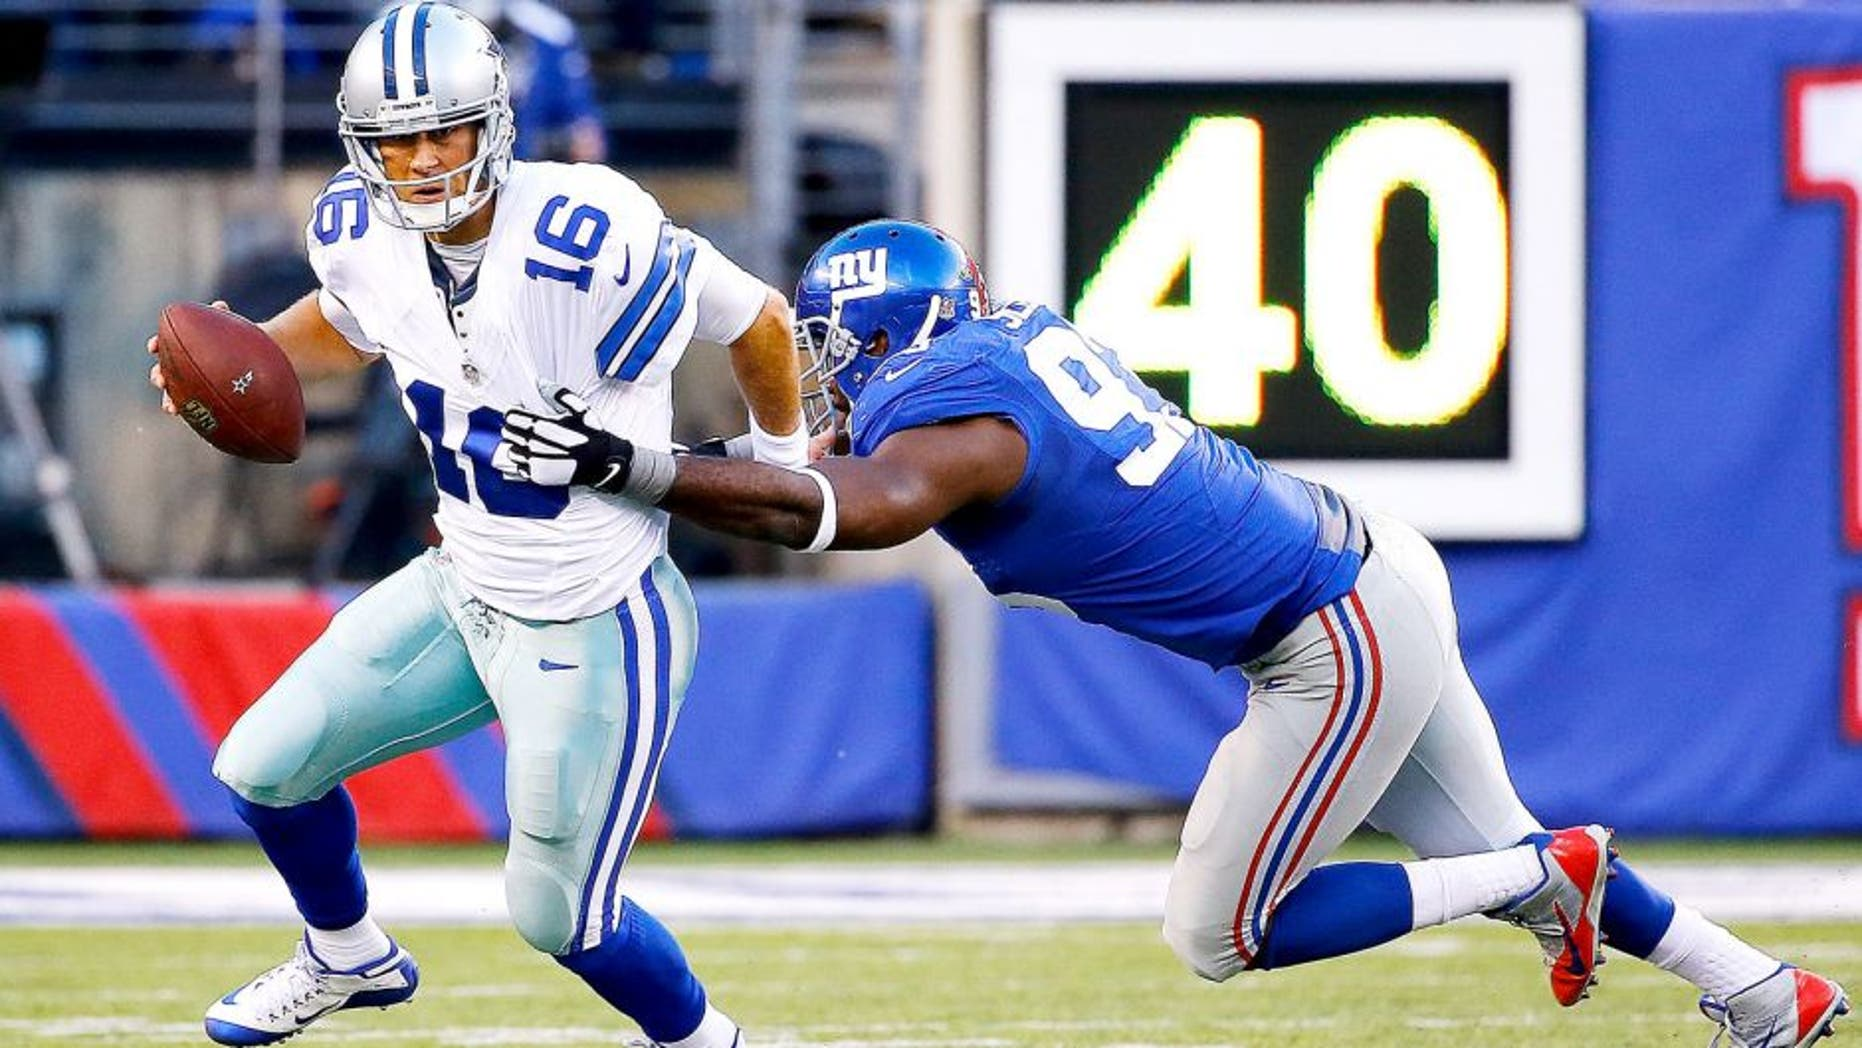 EAST RUTHERFORD, NJ - OCTOBER 25: Matt Cassel #16 of the Dallas Cowboys escapes the tackle attempt by George Selvie #93 of the New York Giants during the second quarter at MetLife Stadium on October 25, 2015 in East Rutherford, New Jersey. (Photo by Al Bello/Getty Images)